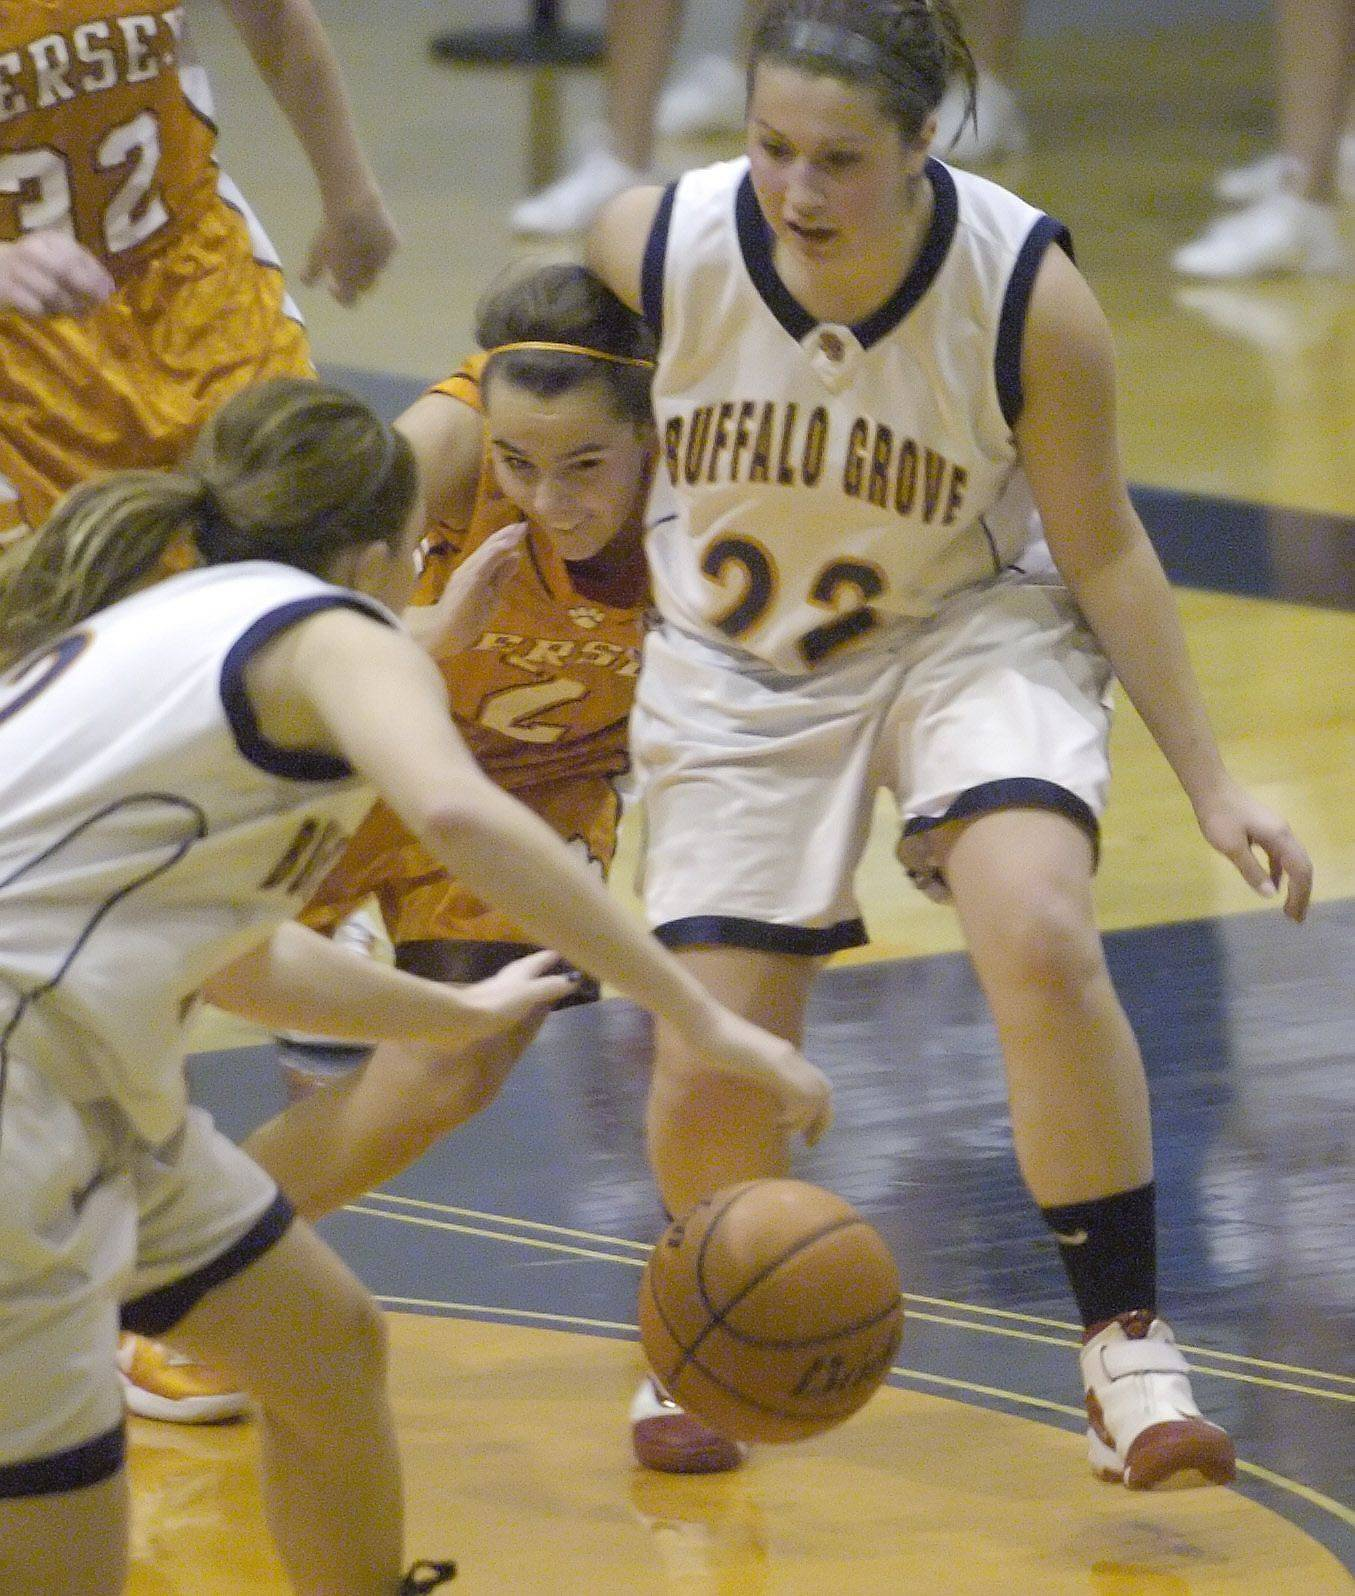 Images from the Hersey vs Buffalo Grove girls basketball game in Buffalo Grove on Tuesday, December 7th.